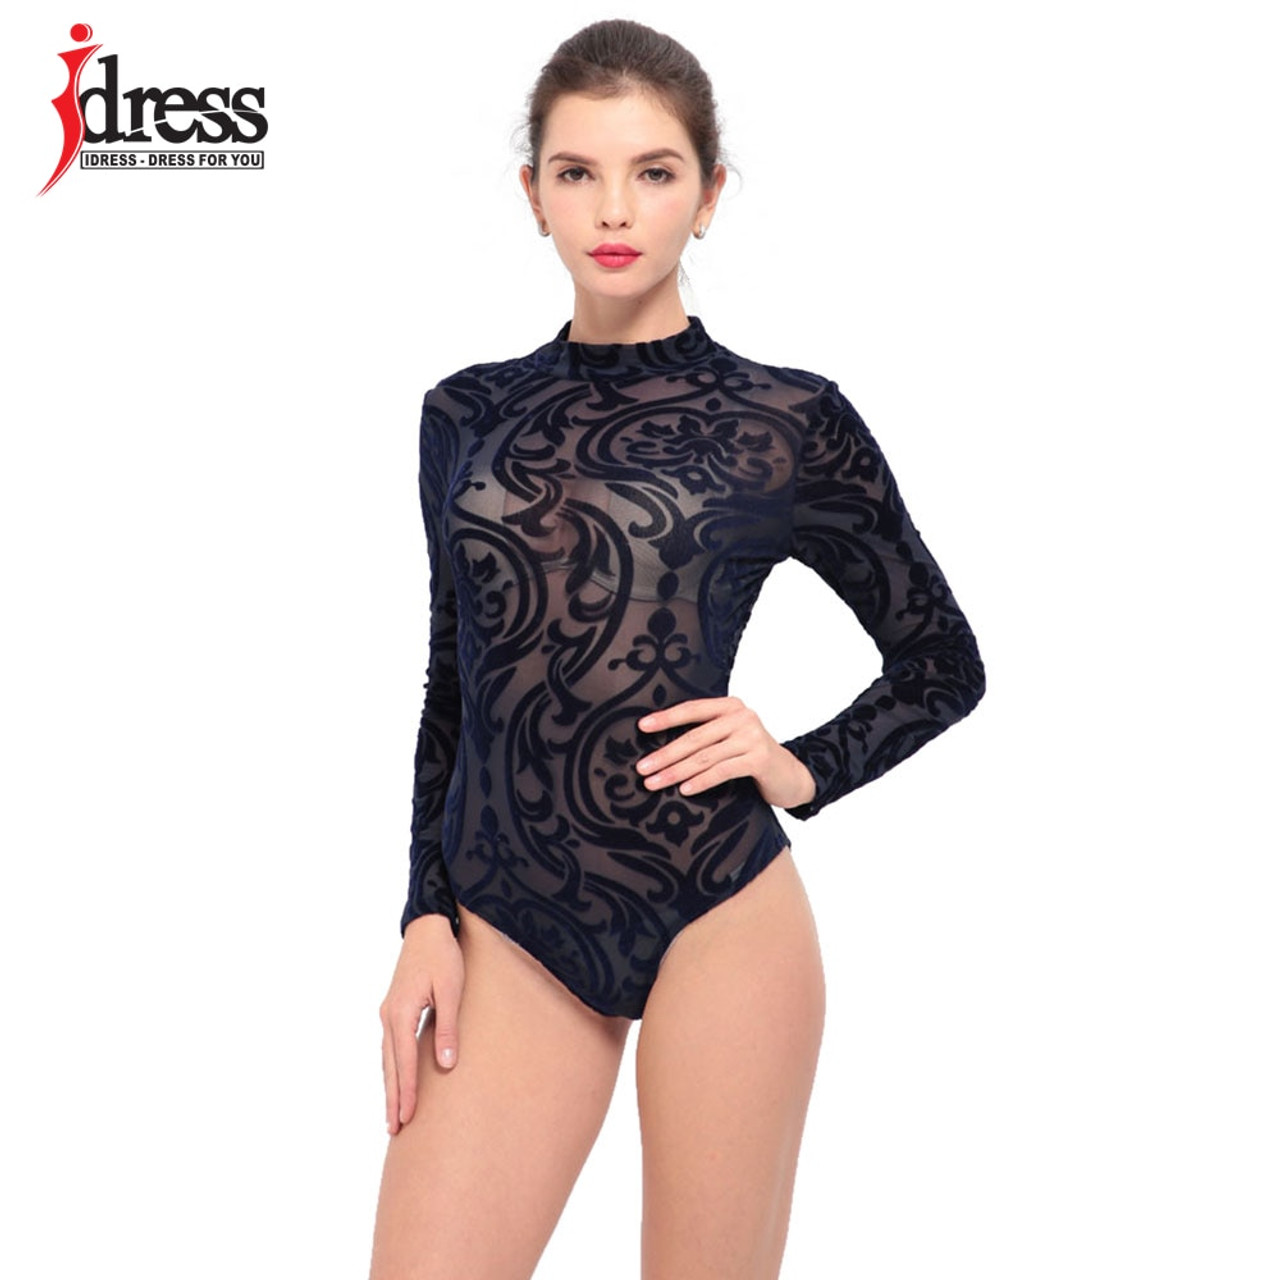 Women's Clothing Transparent Bodysuit Women High Neck Bodycon Party Rompers Jumpsuits See Through Mesh Body Tops Women Bodysuits Buy One Get One Free